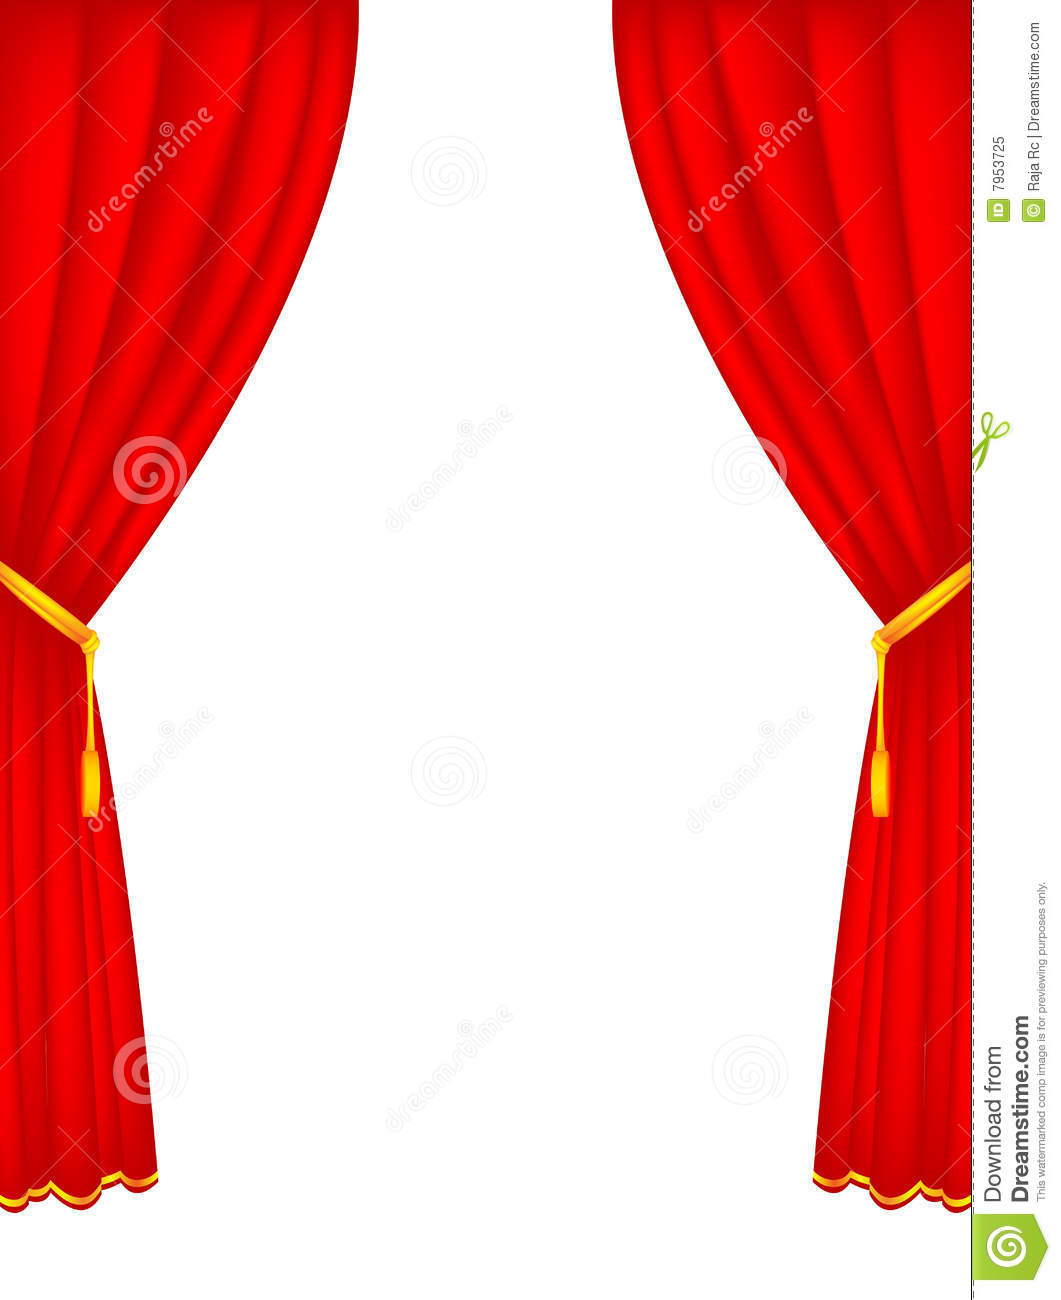 Stage Curtains Stock Vector Image Of Illustration Audience 7953725